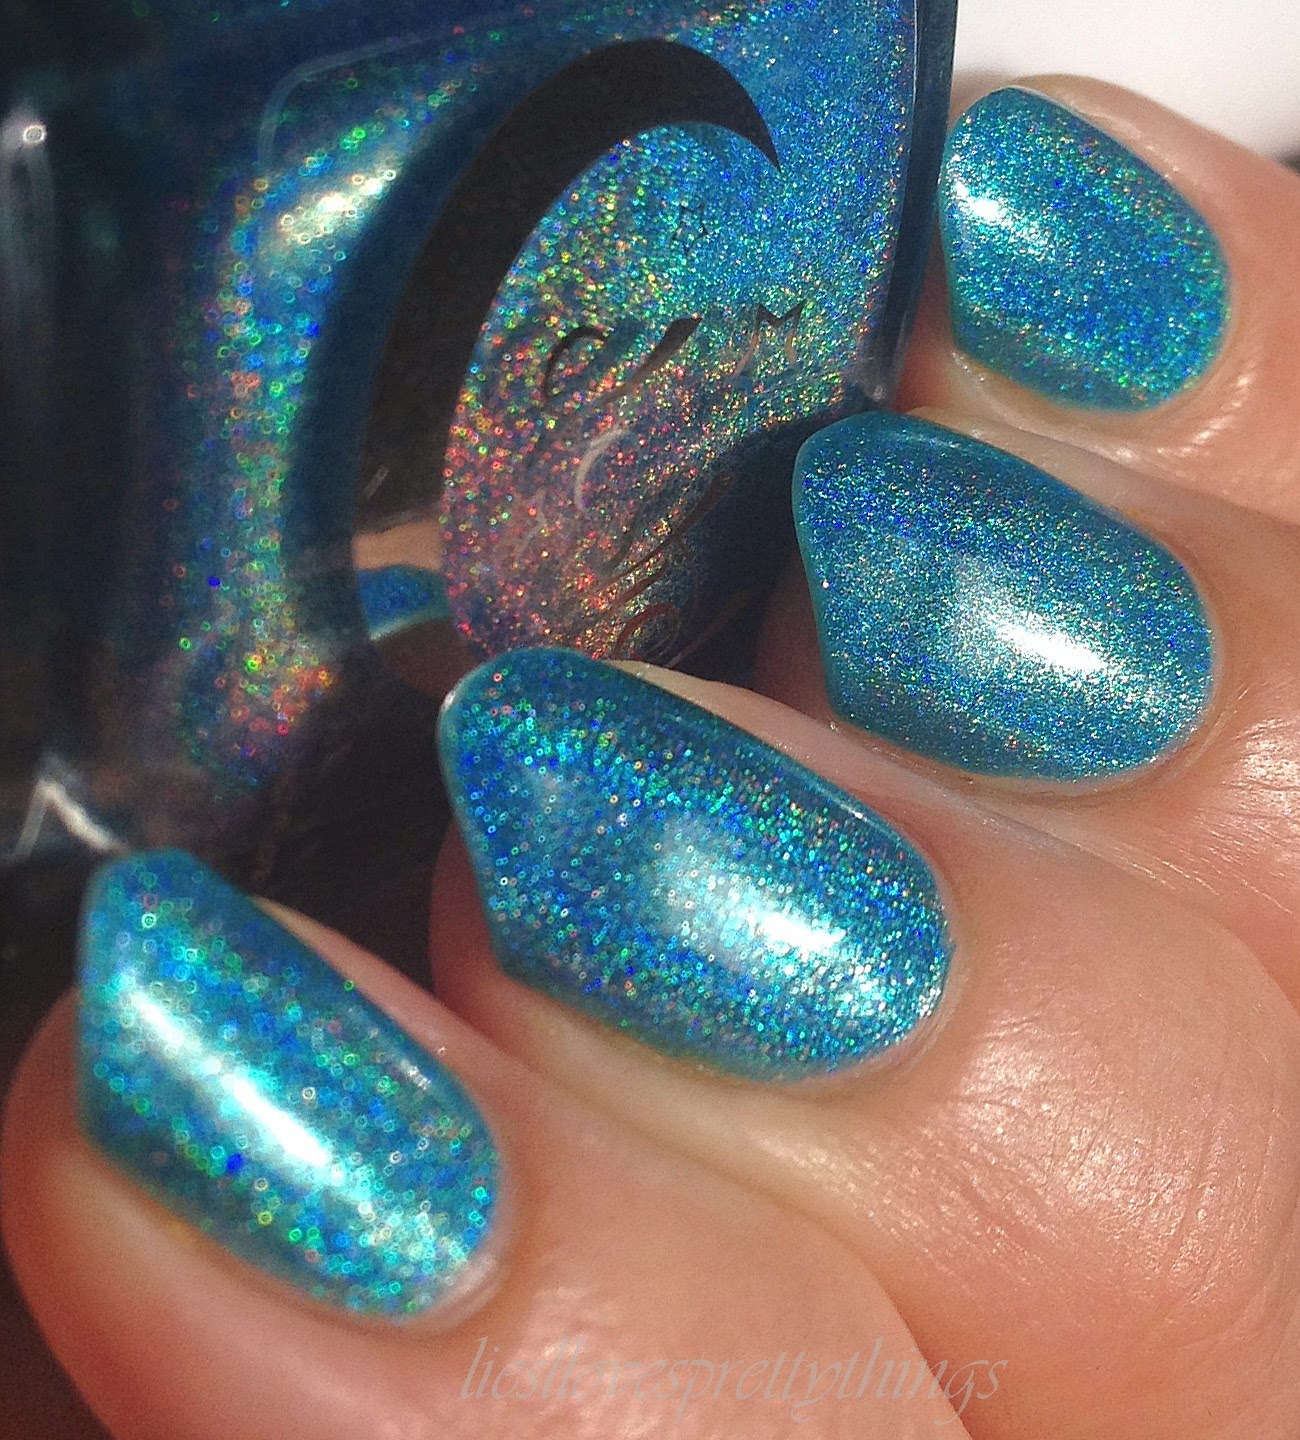 Celestial Cosmetics Inception swatch and review